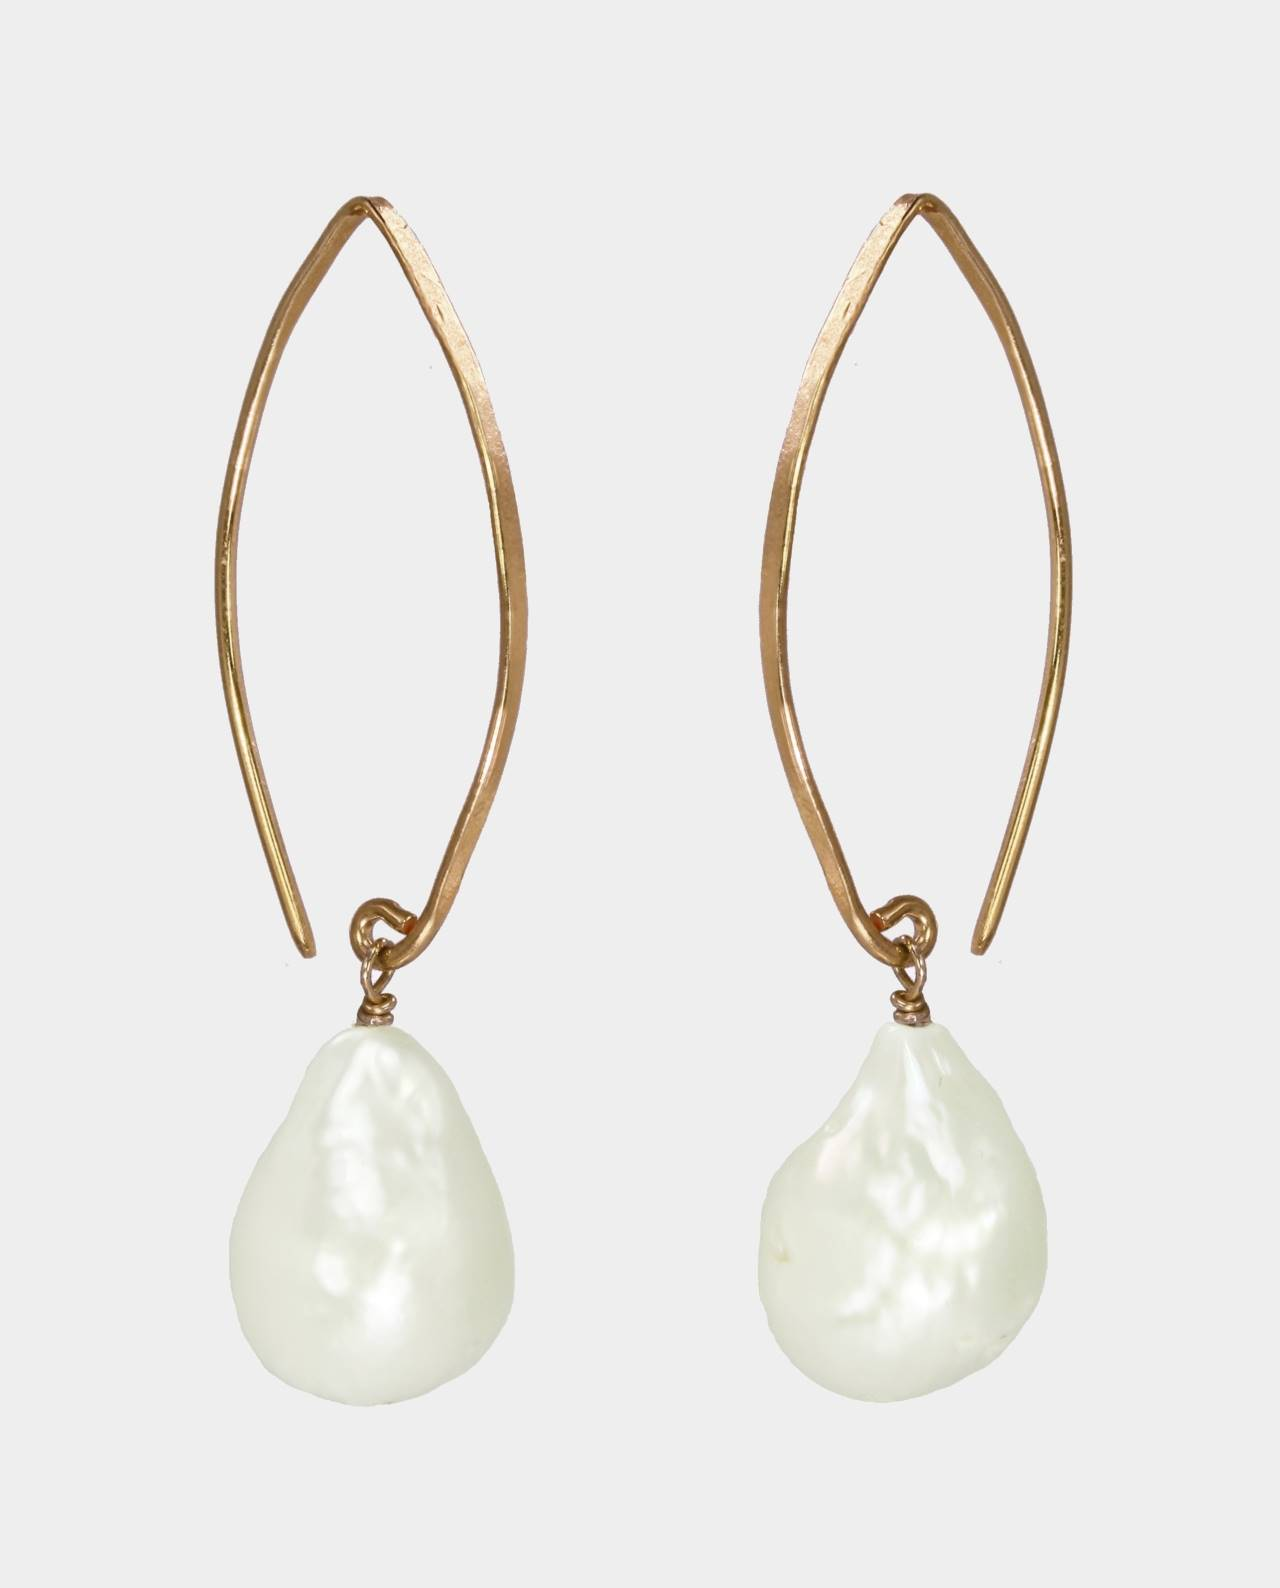 The long curved ear hooks of the earrings and natural-shaped white freshwater pearls are inspired by Gothic cathedrals